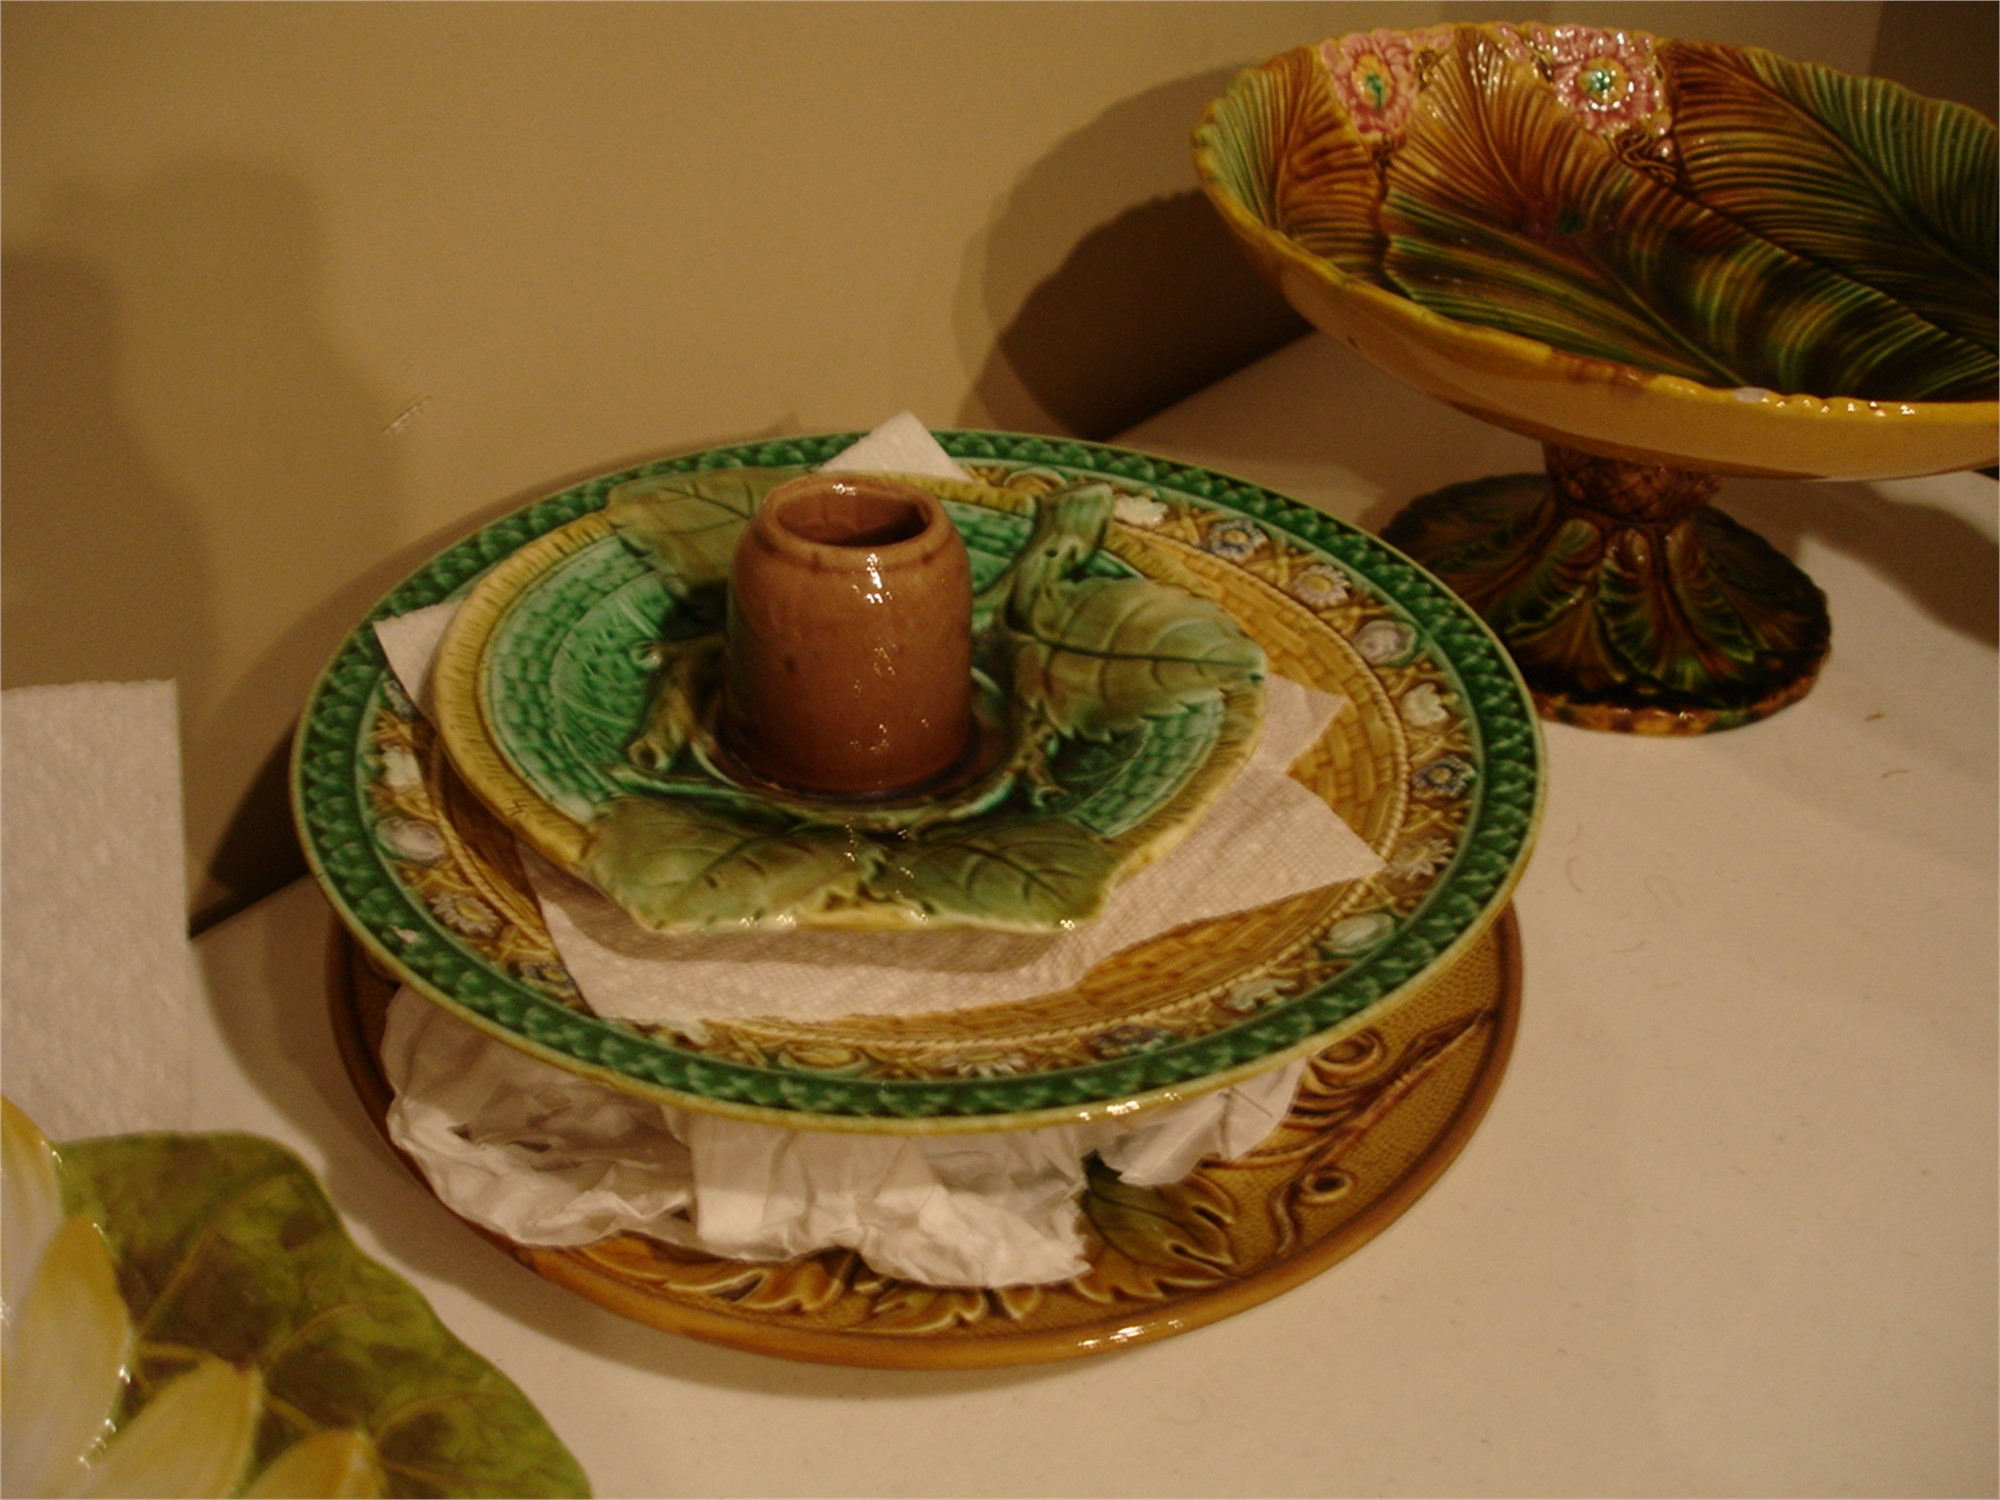 AN AMERICAN MAJOLICA TOOTHPICK HOLDER